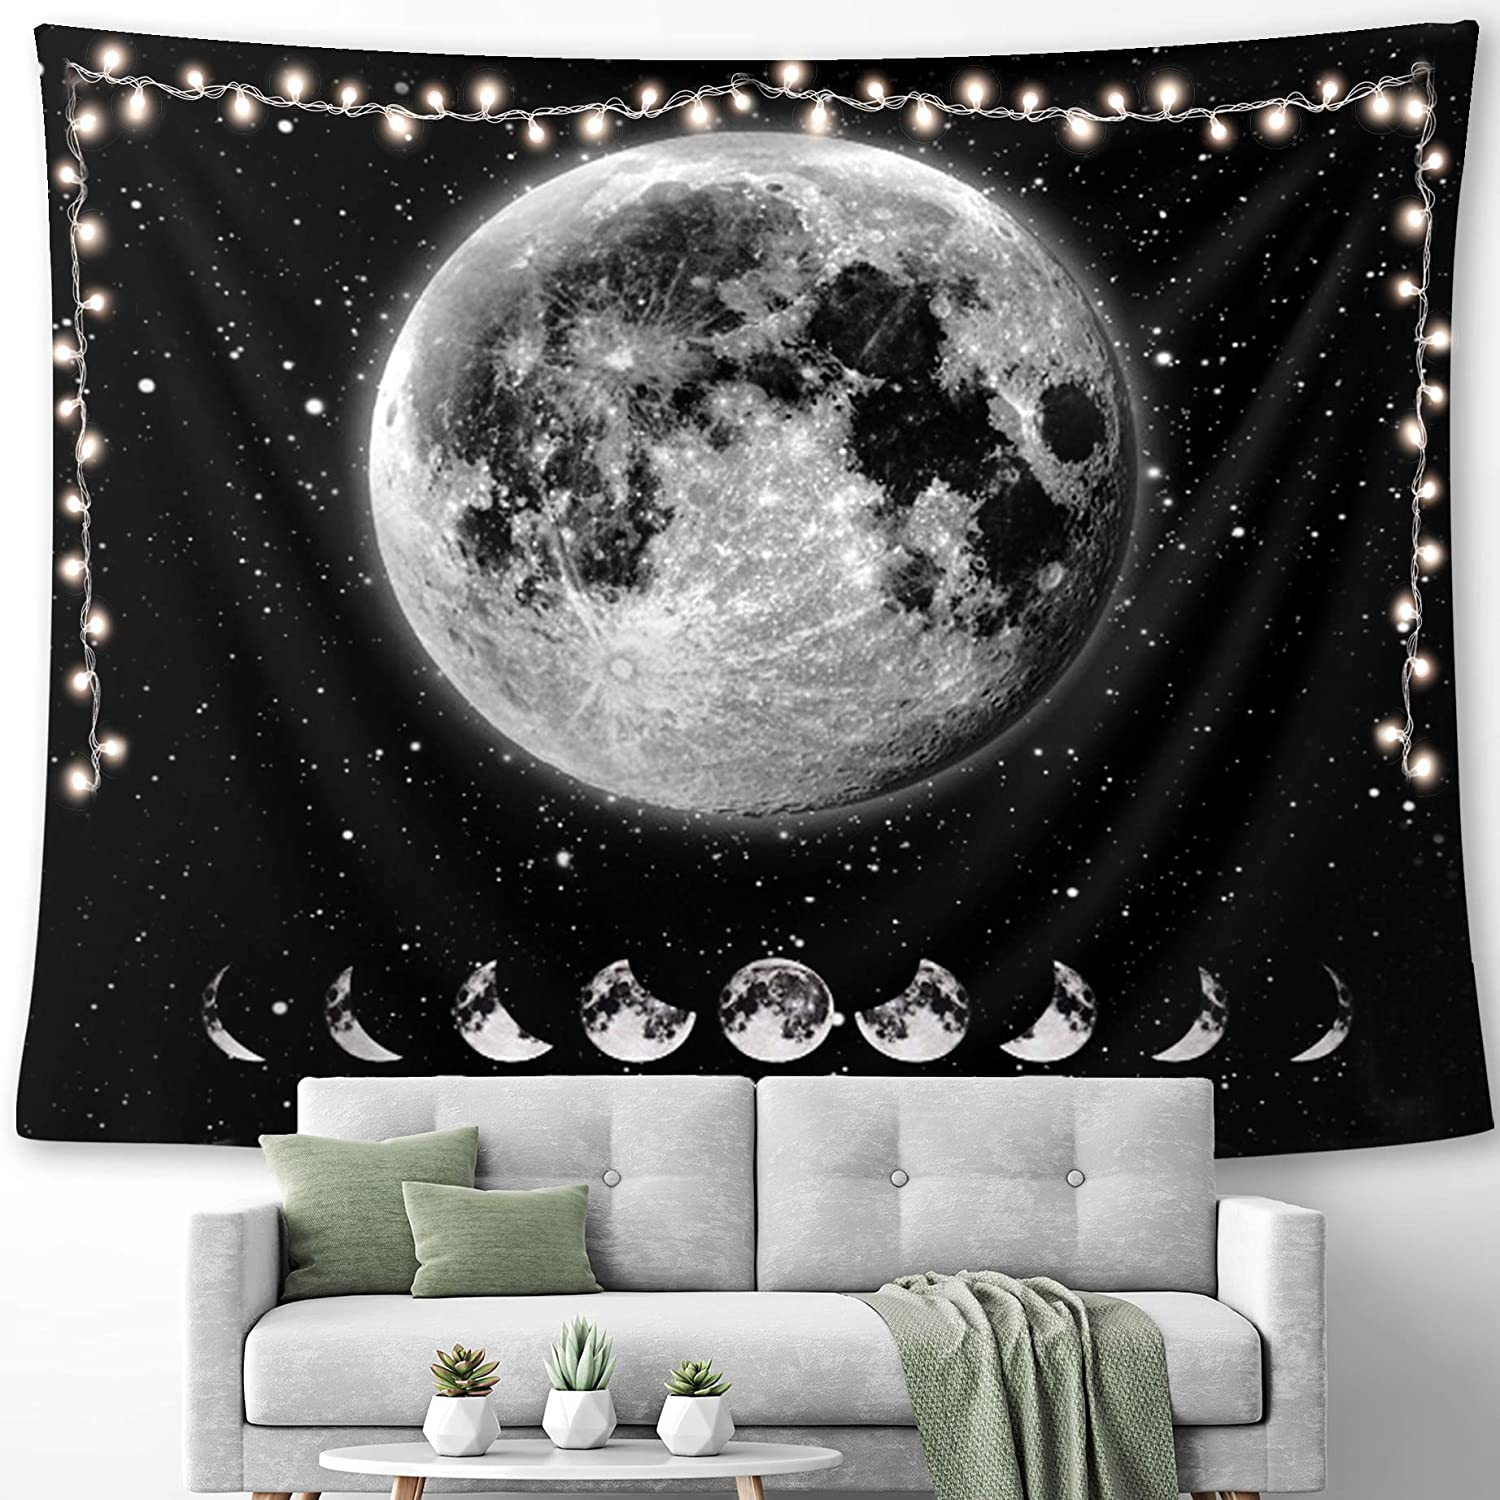 HUEMANKIND Full Moon Tapestry Wall Hanging   Wall Tapestry For Bedroom Living Room, Home Decor   Hippie Decor Wall Art Trippy Tapestry   Black And White Moon Tapestry Design   Size (50